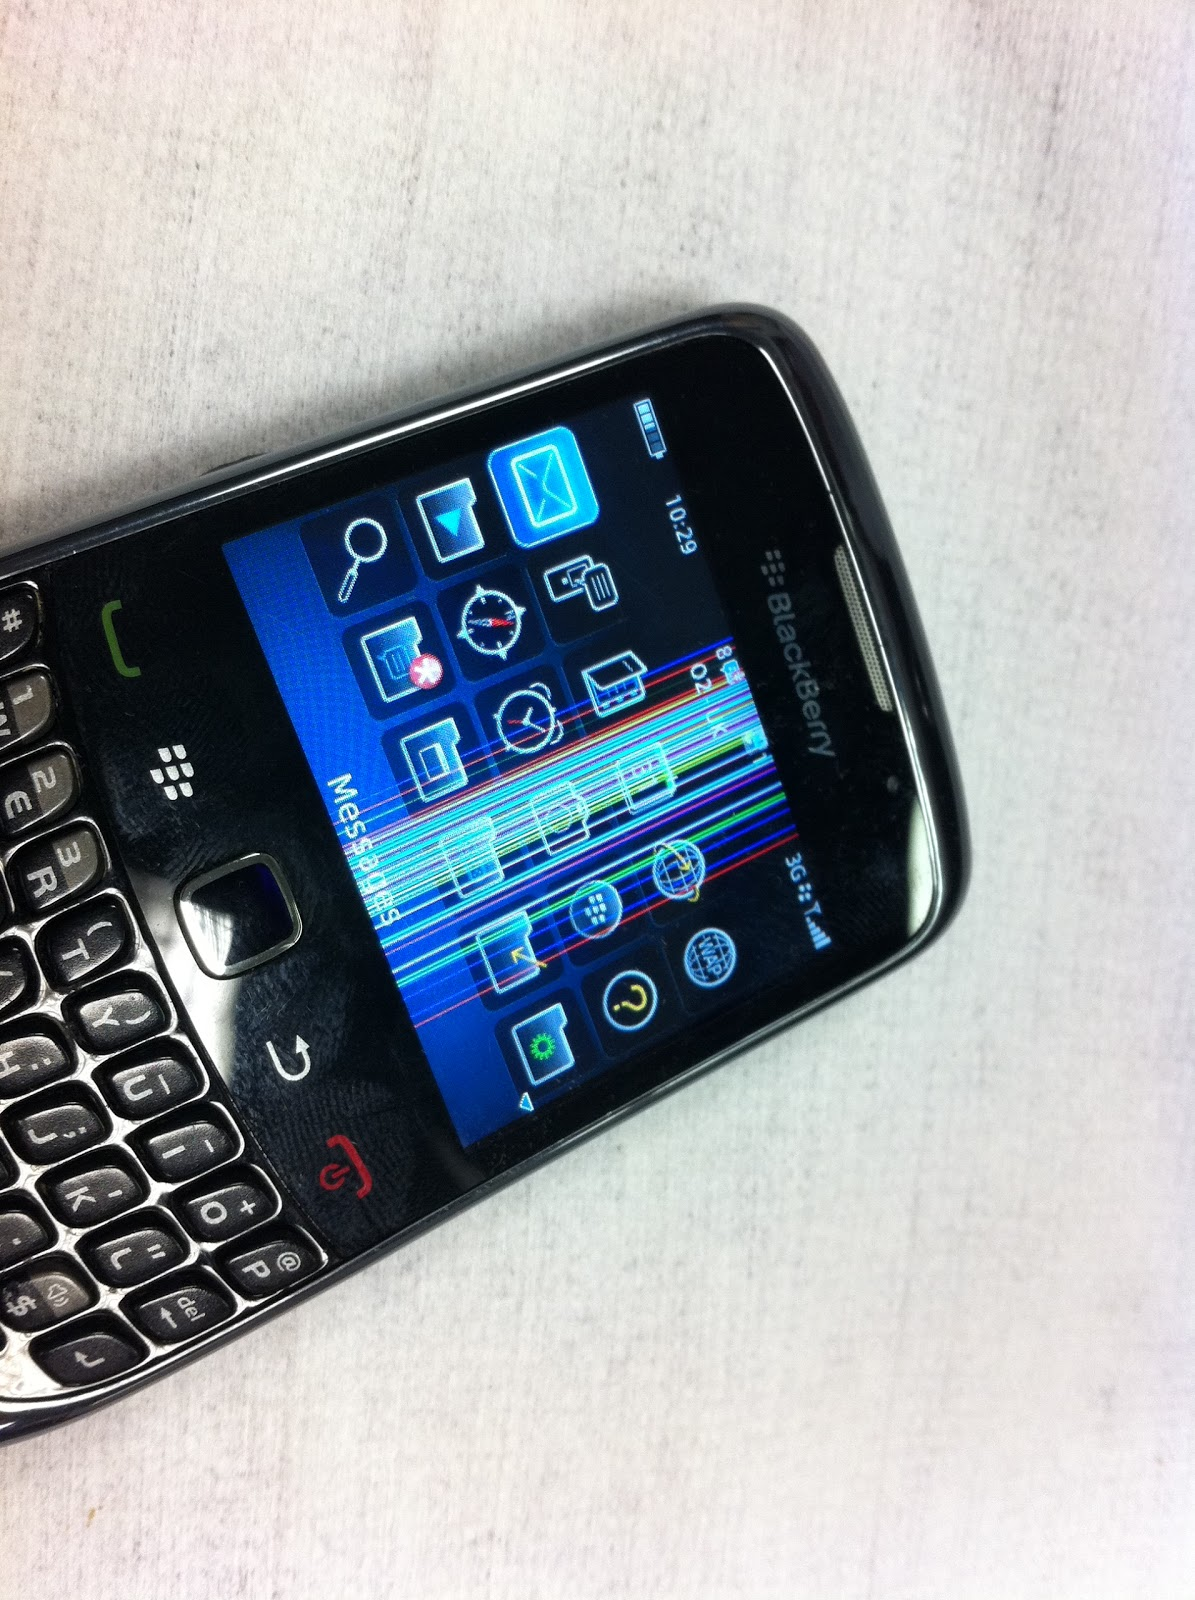 The Repair Blog: Blackberry Curve 9300 LCD replacement